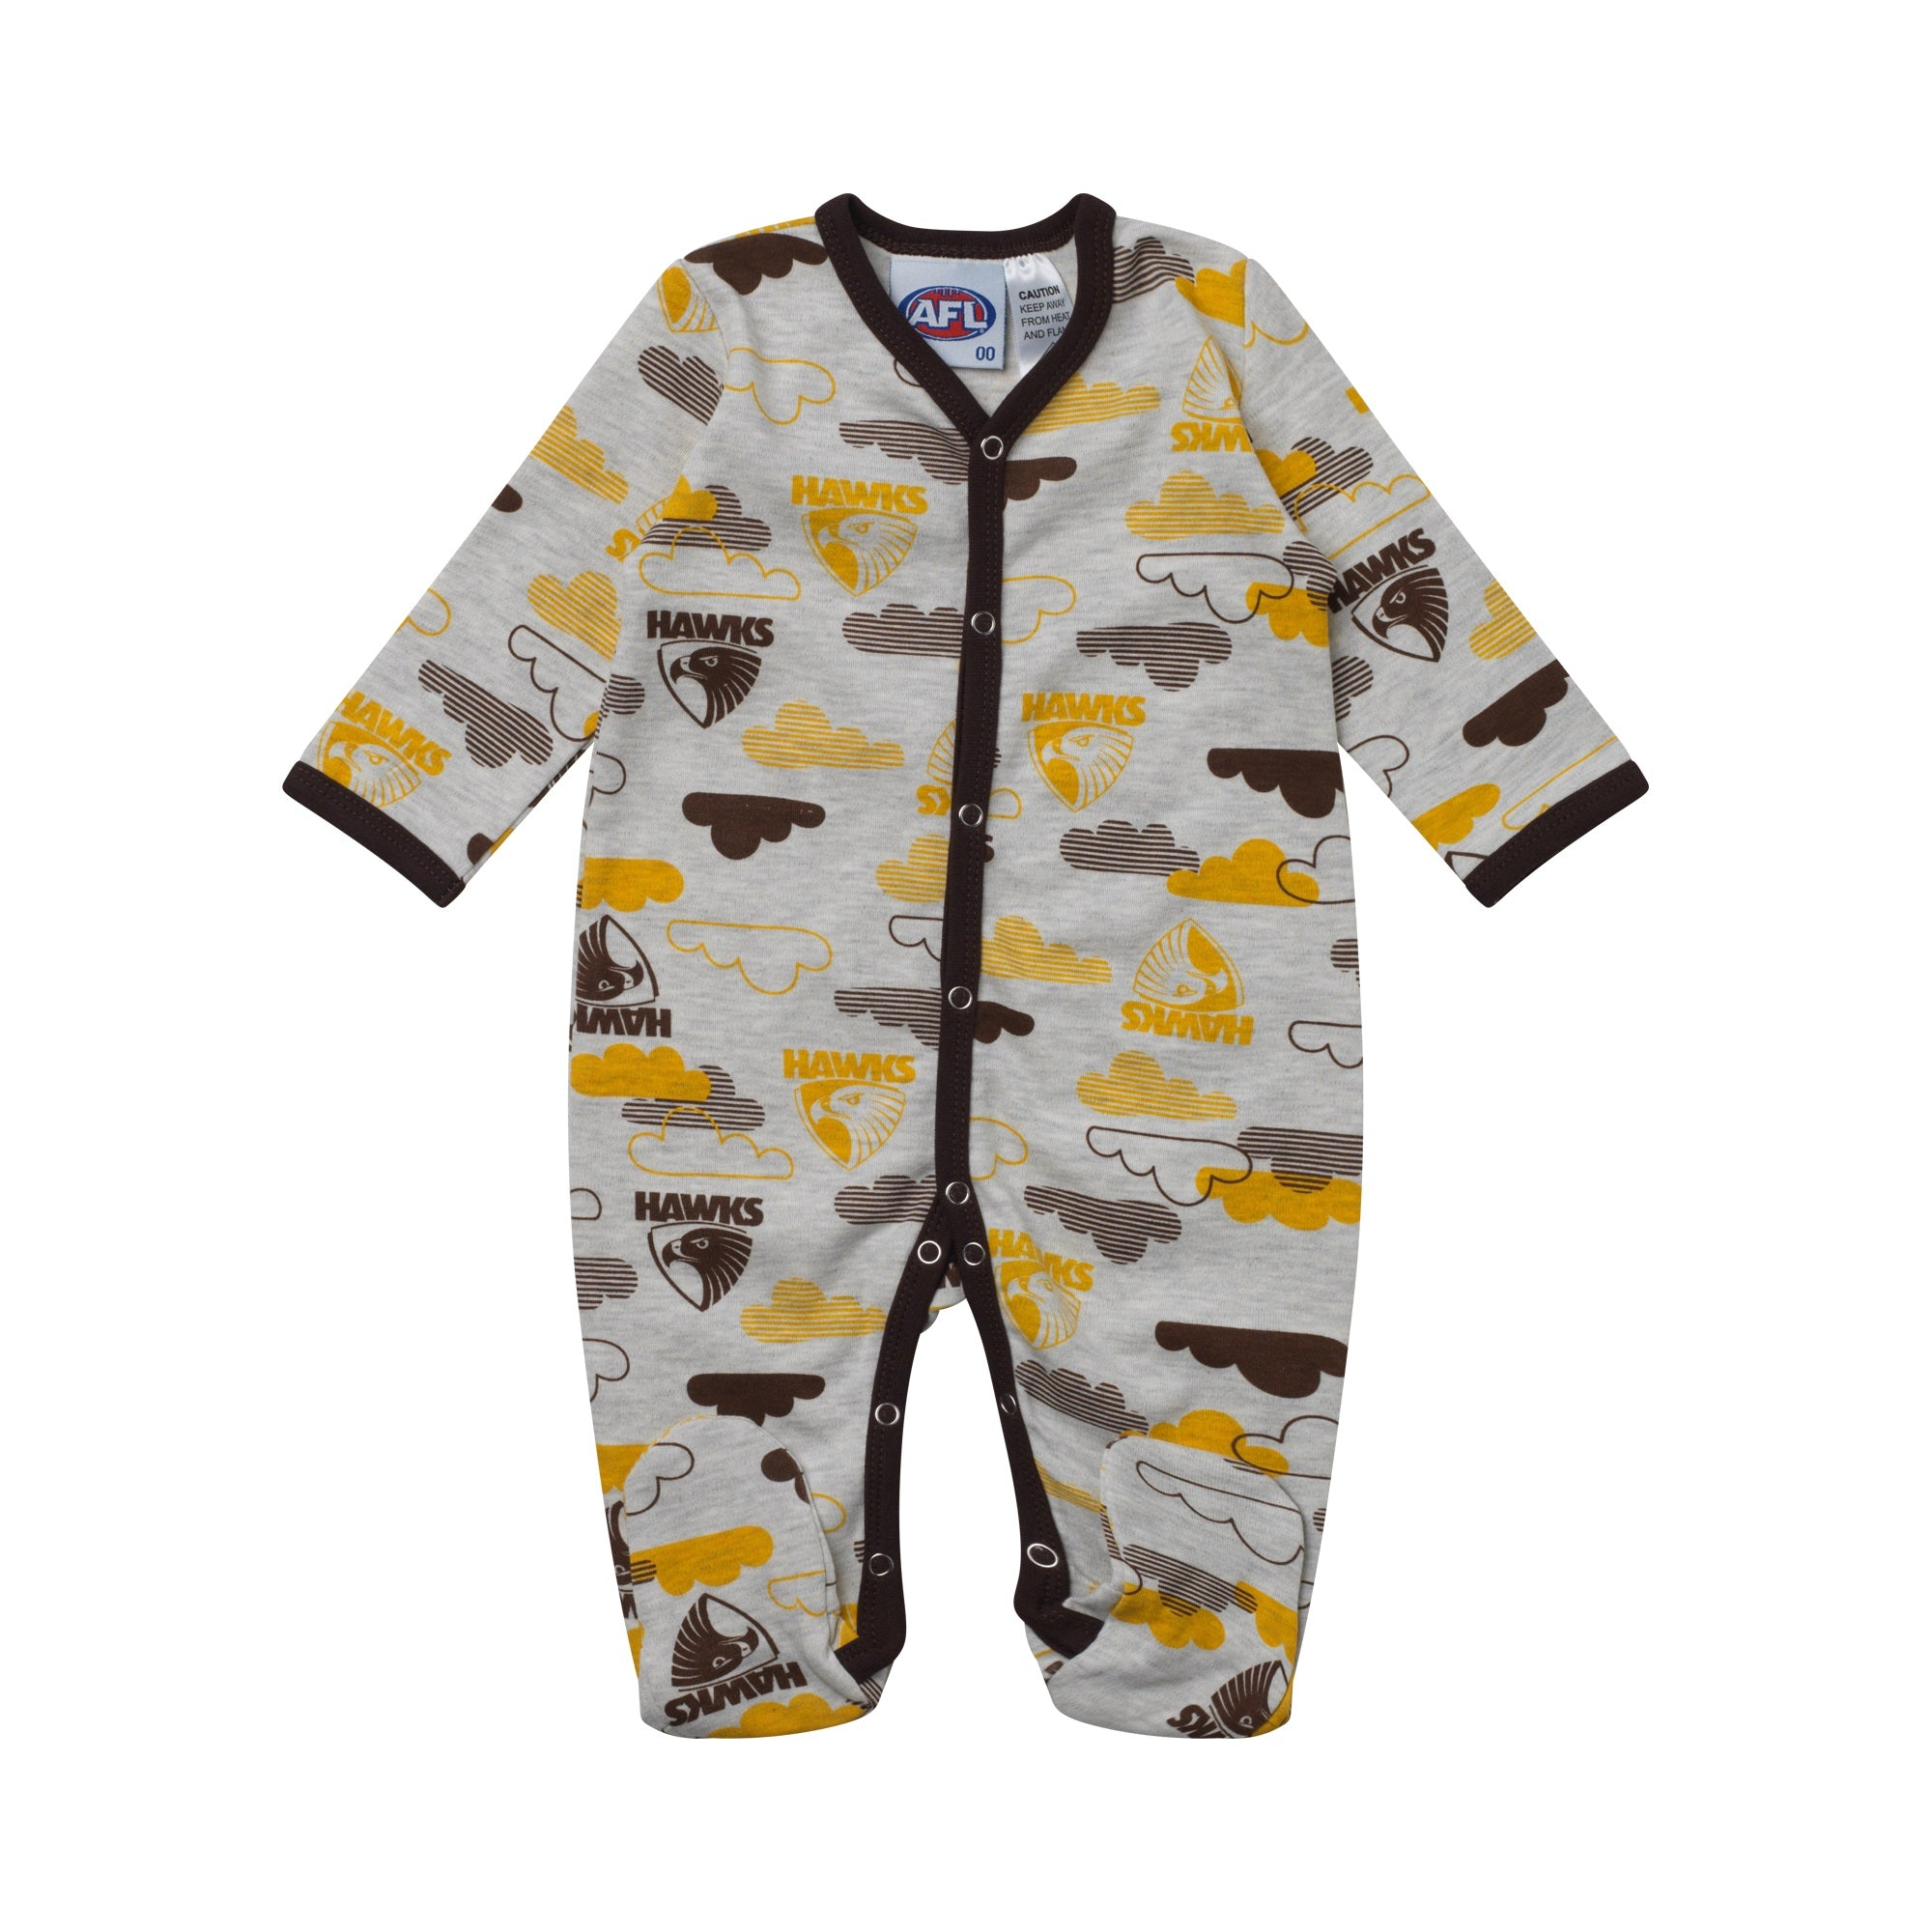 f5ad06241c25 Hawthorn Hawks Babies Infants Coverall Romper Onesie